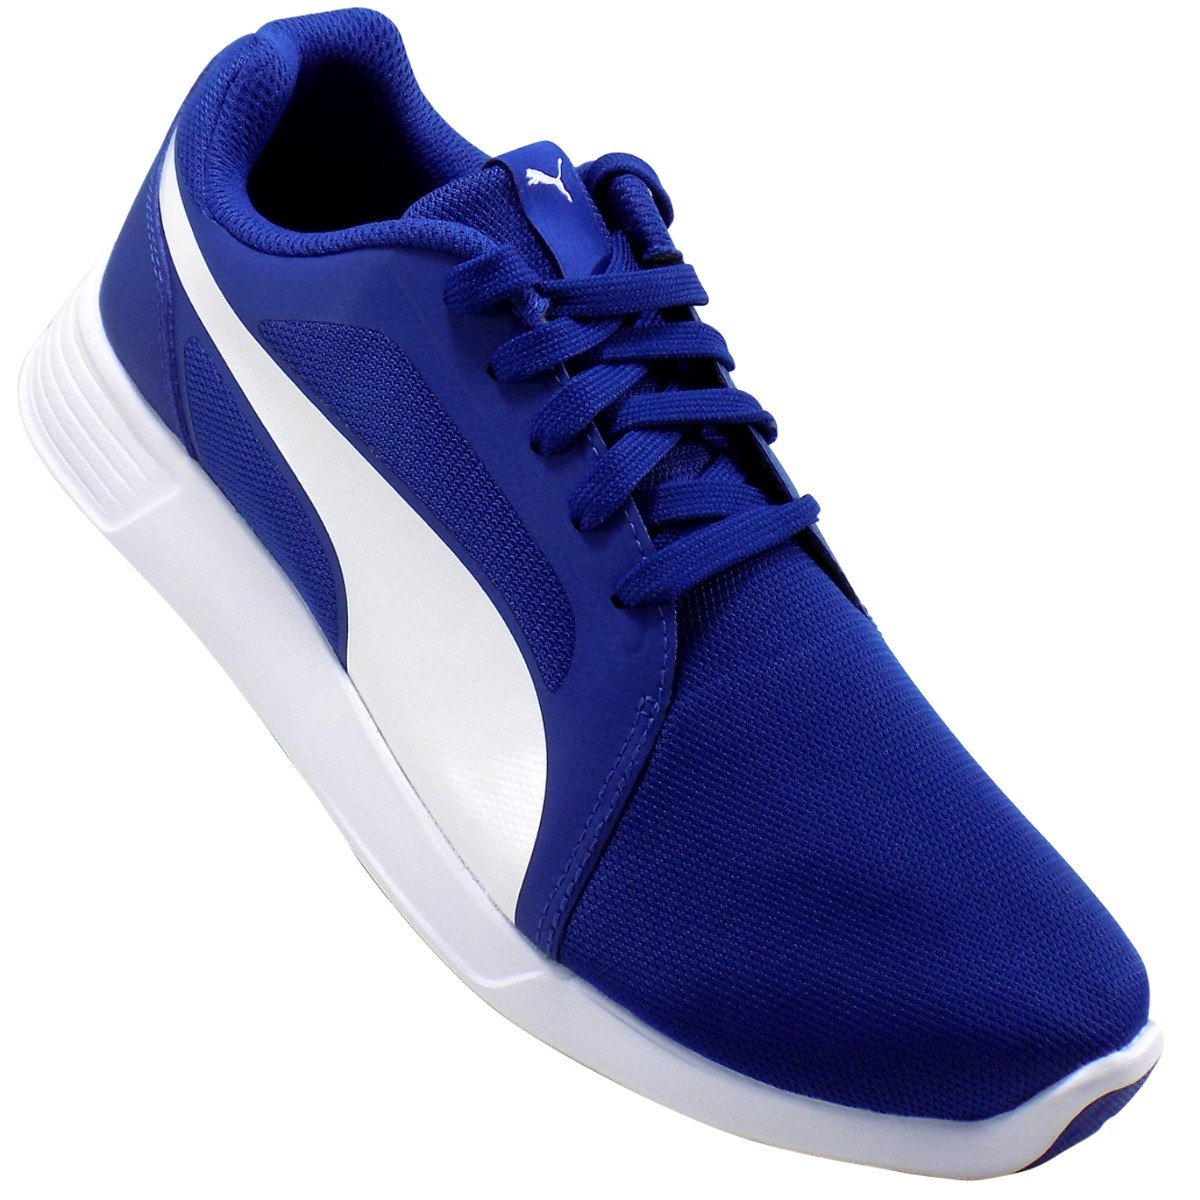 5b1de370 tenis puma azul rey, PUMA® Women's&Men's New Athletic Gear